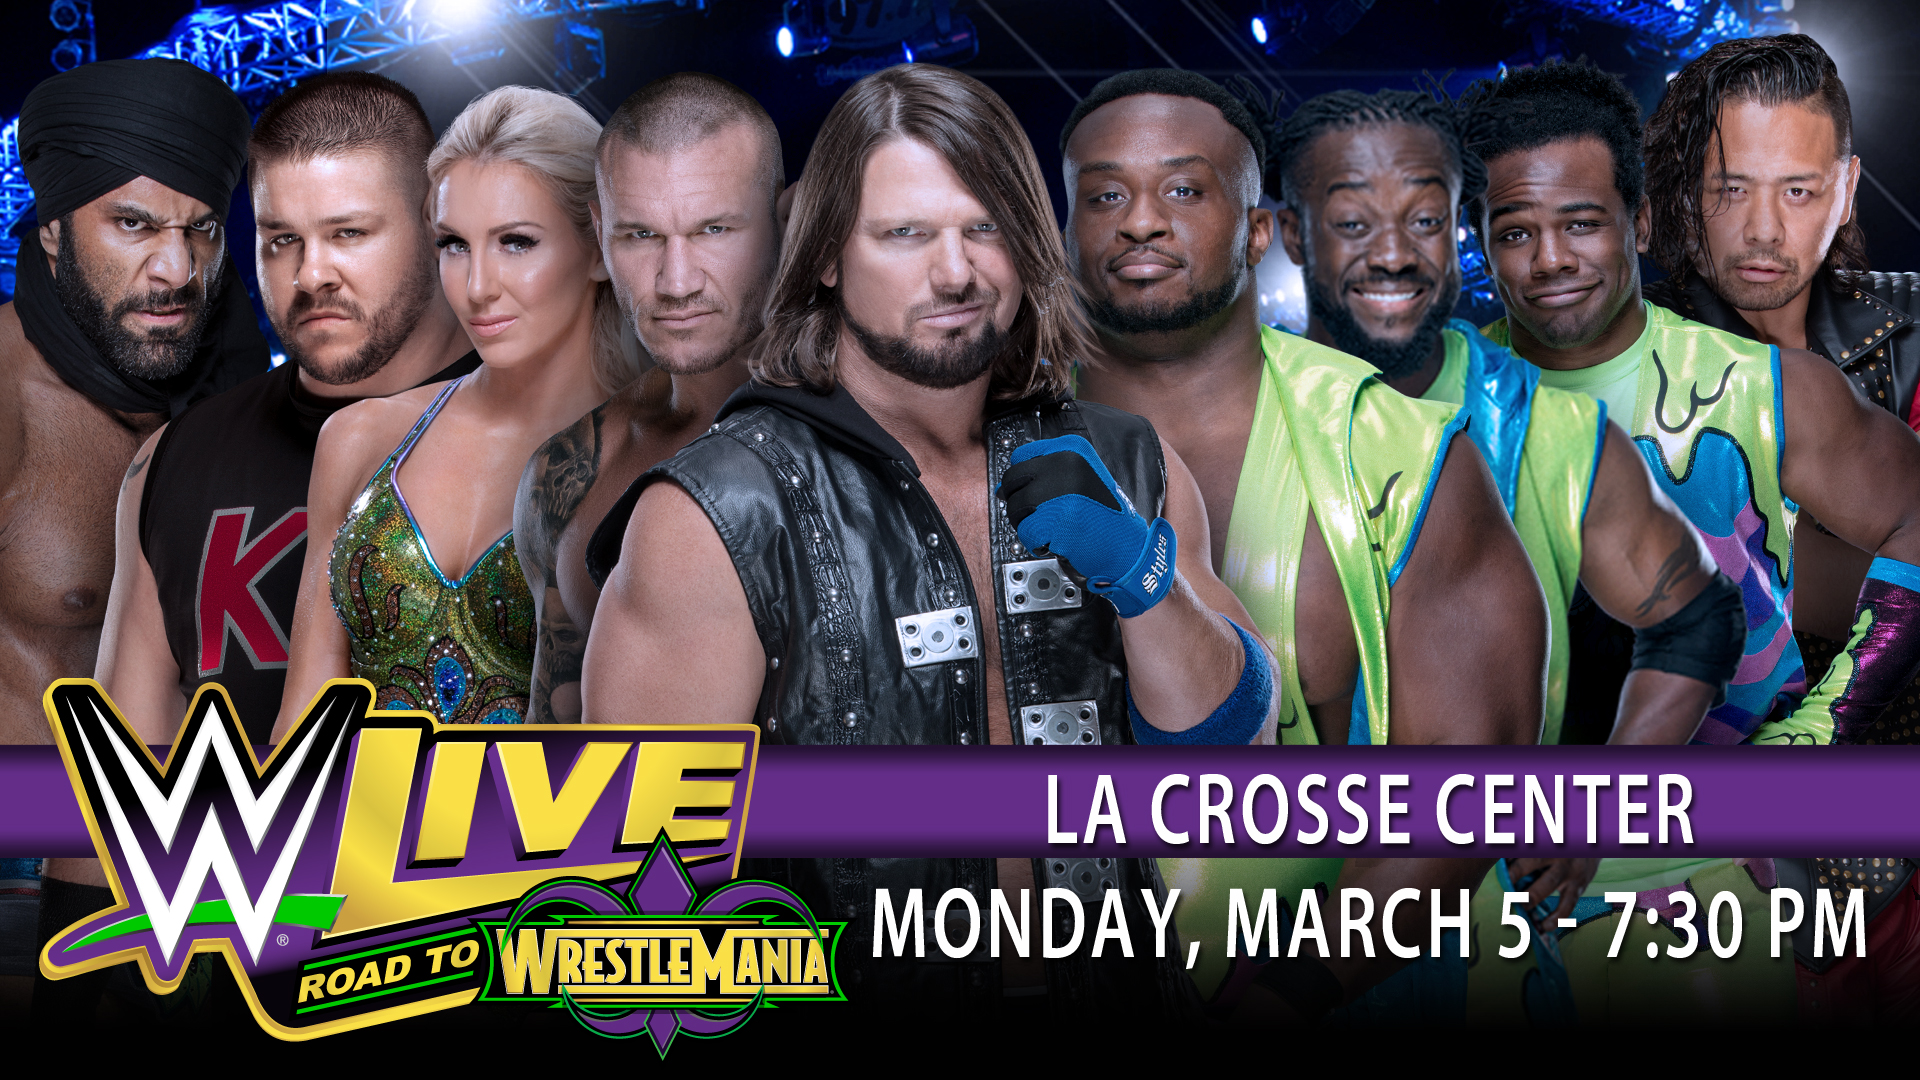 Updated Match Card for WWE Live in La Crosse Next Week!